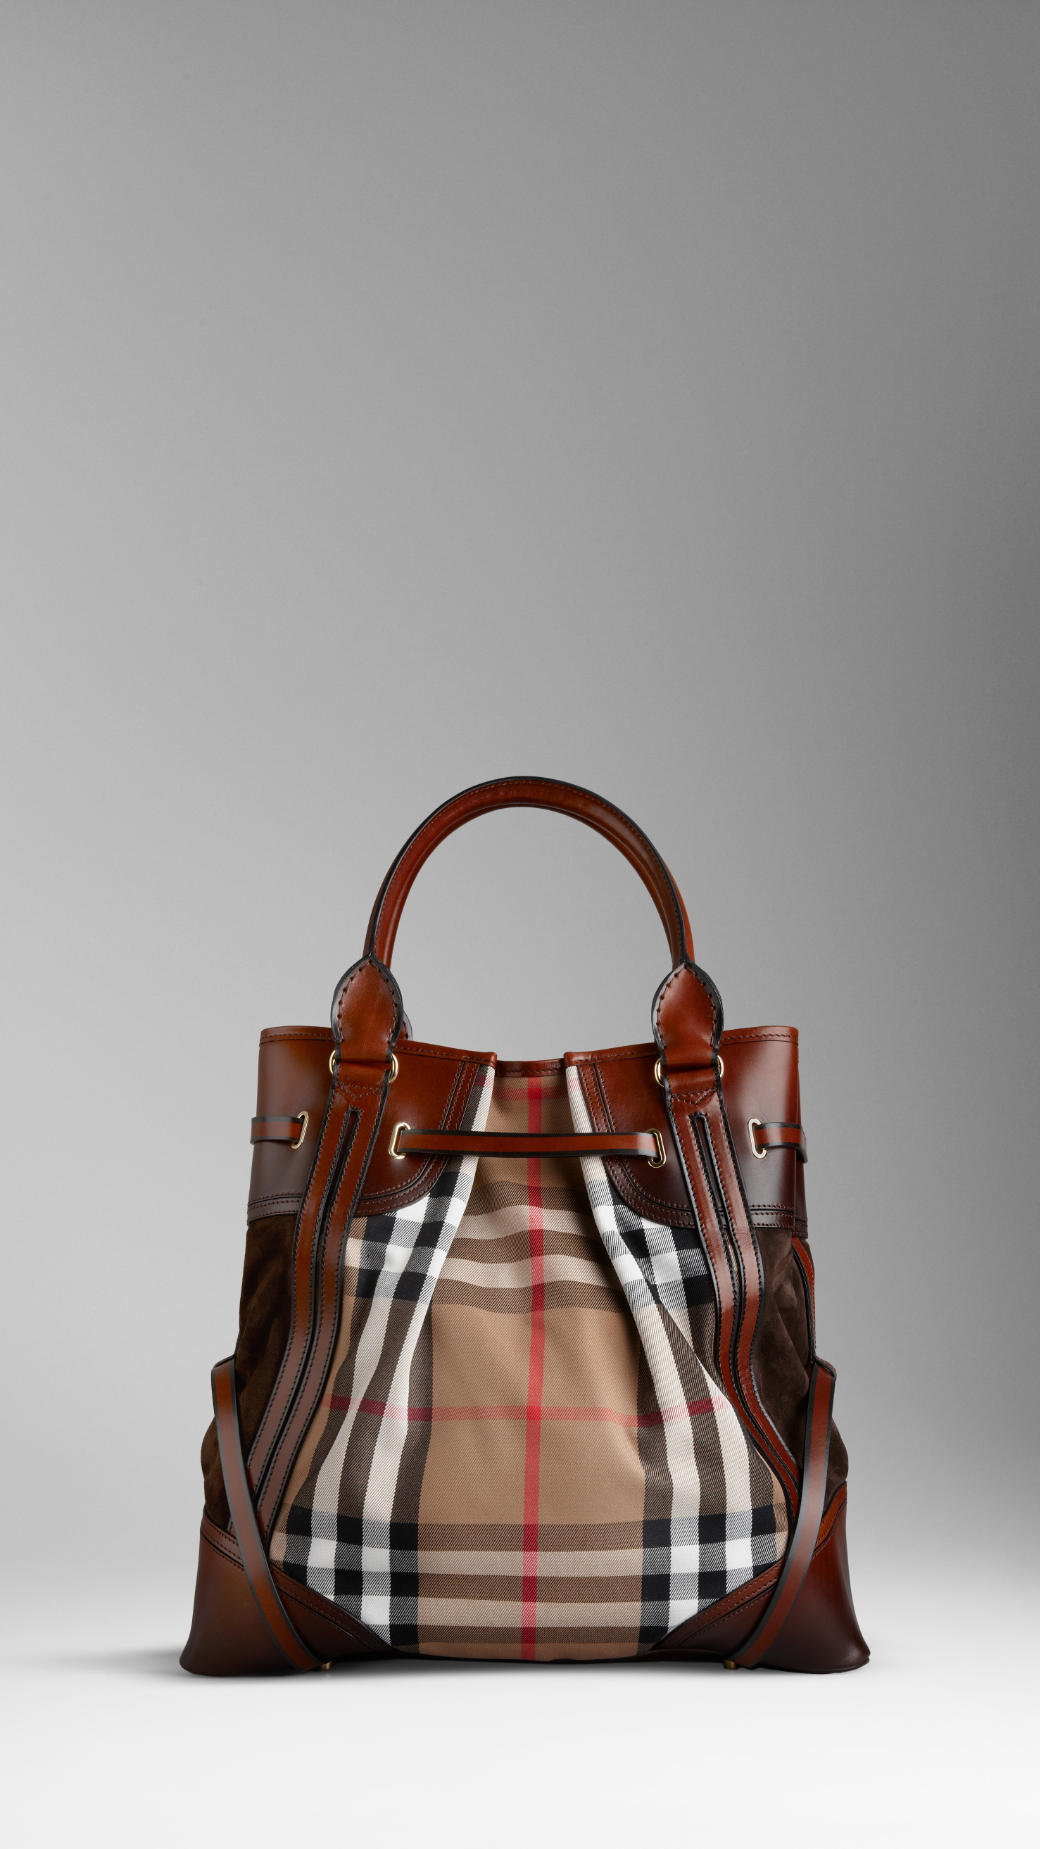 Burberry Large Bridle House Check Whipstitch Tote Bag in Dark Tan (Brown)